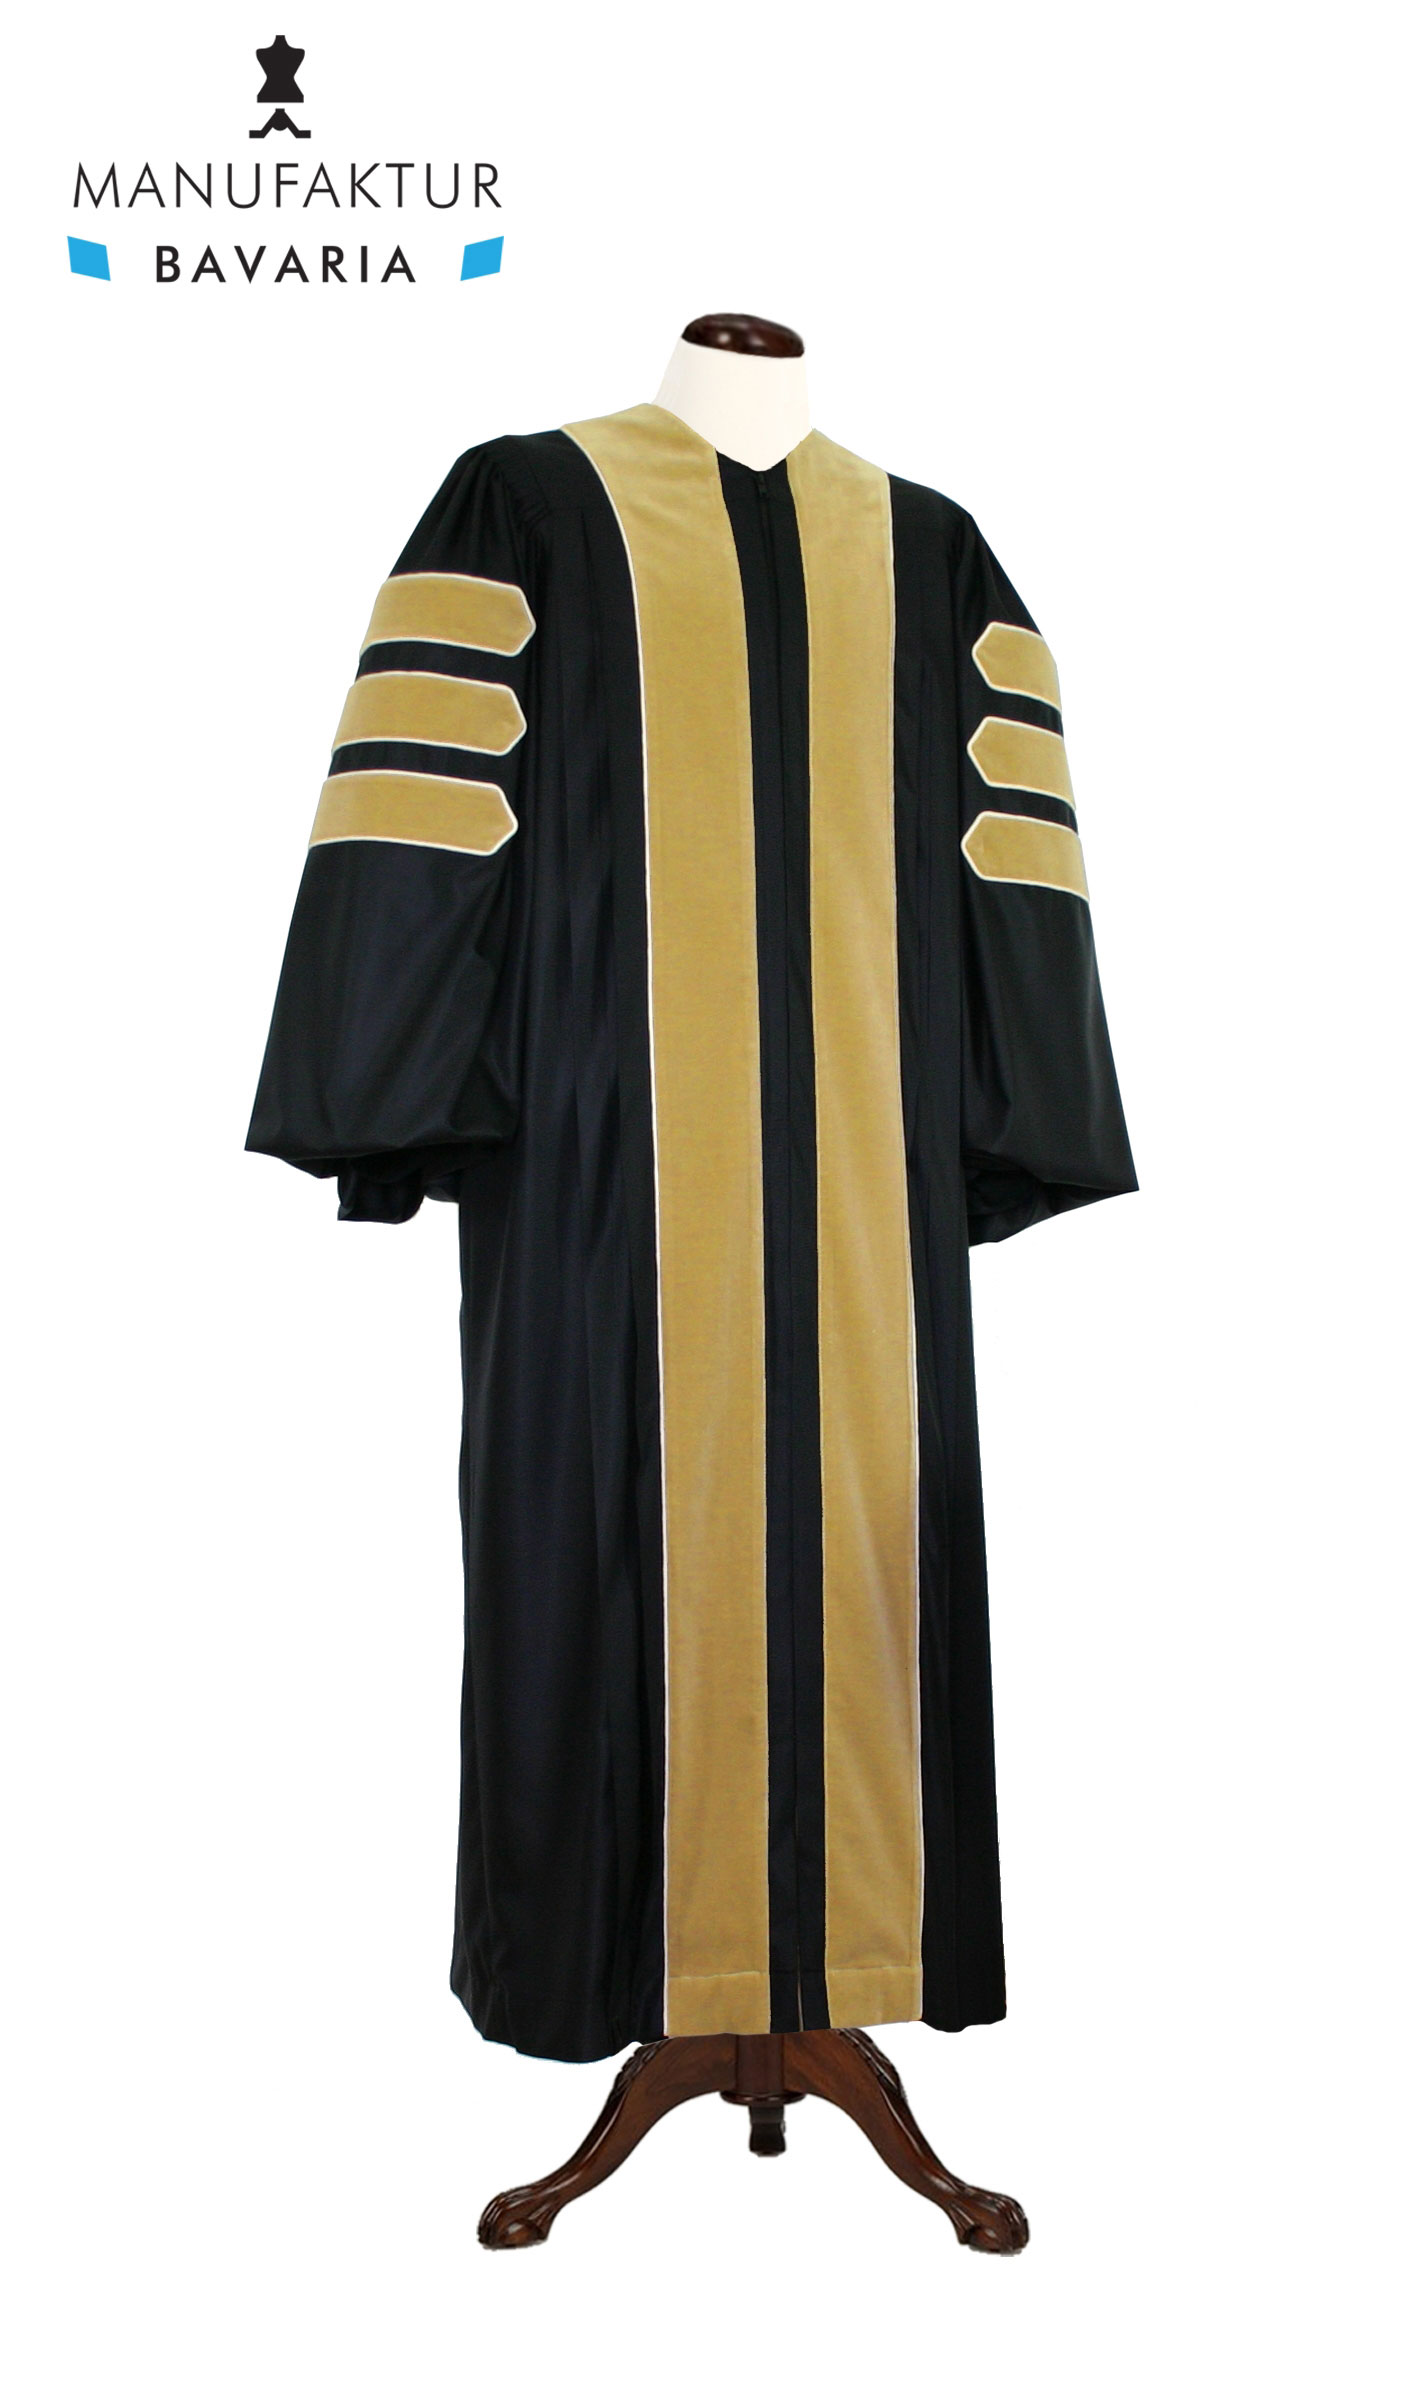 Deluxe Doctoral Of Agriculture Academic Gown For Faculty